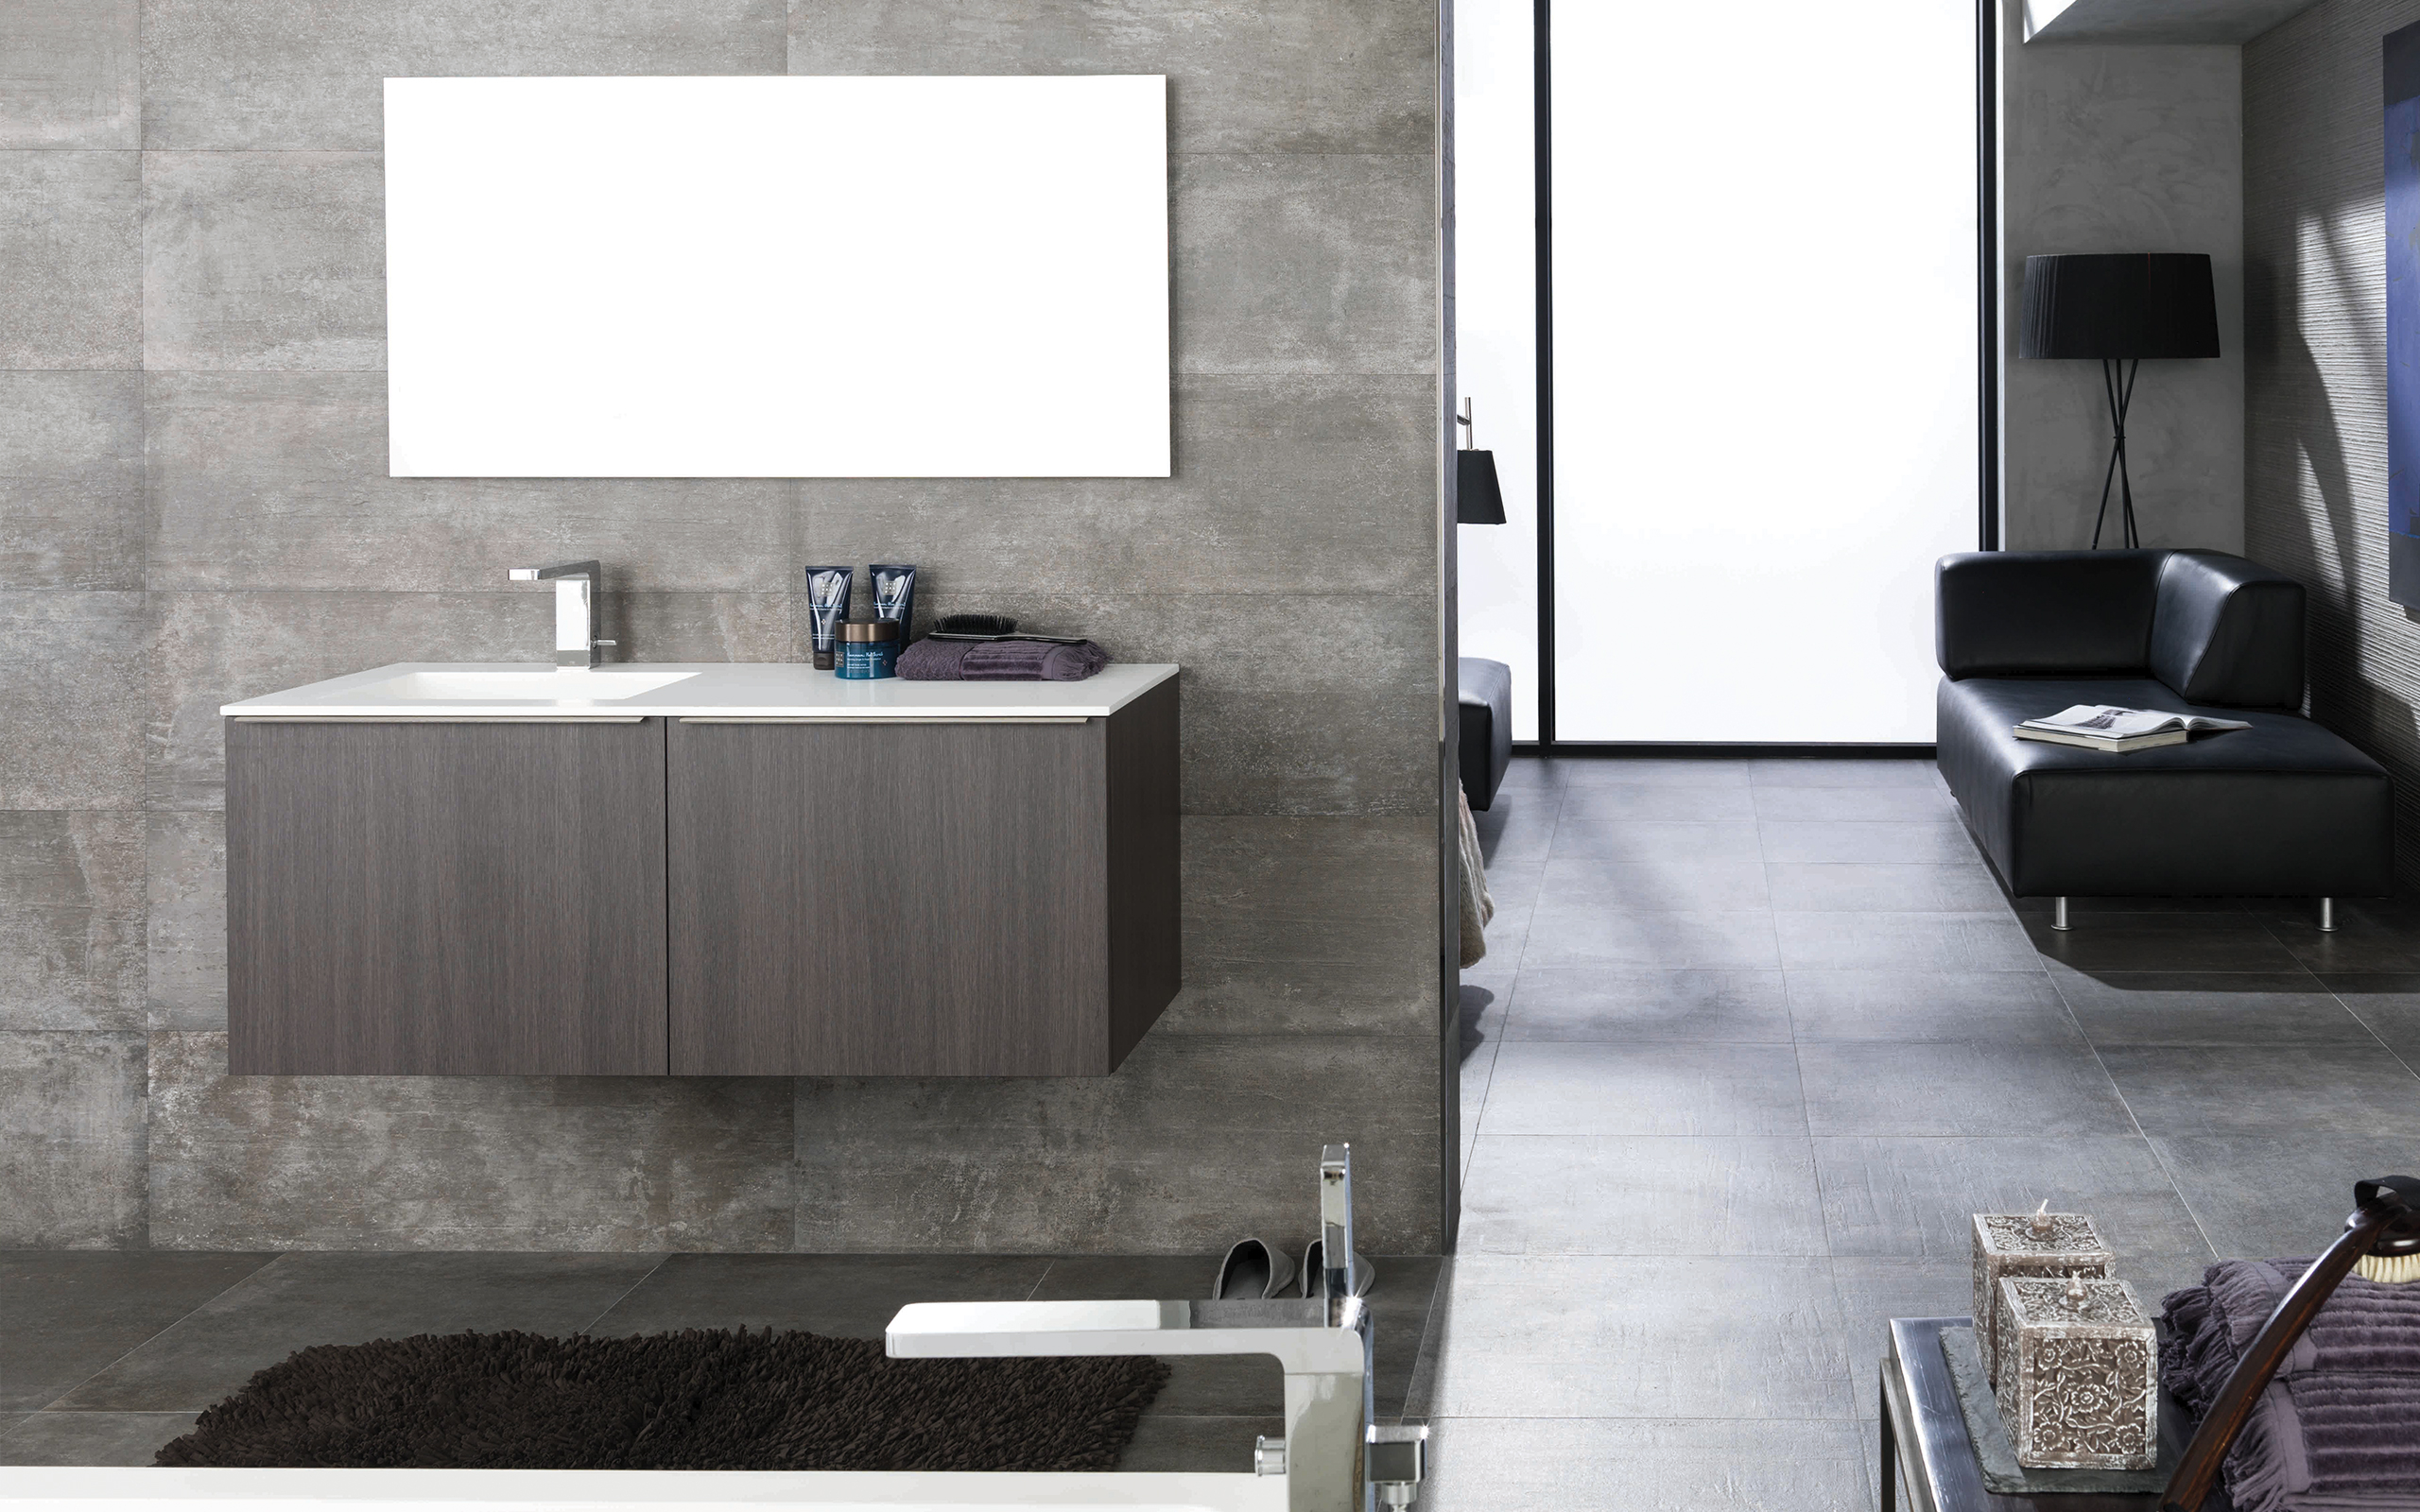 The Next Collection Modern Bathroom Furniture With Broad Design regarding measurements 2560 X 1600